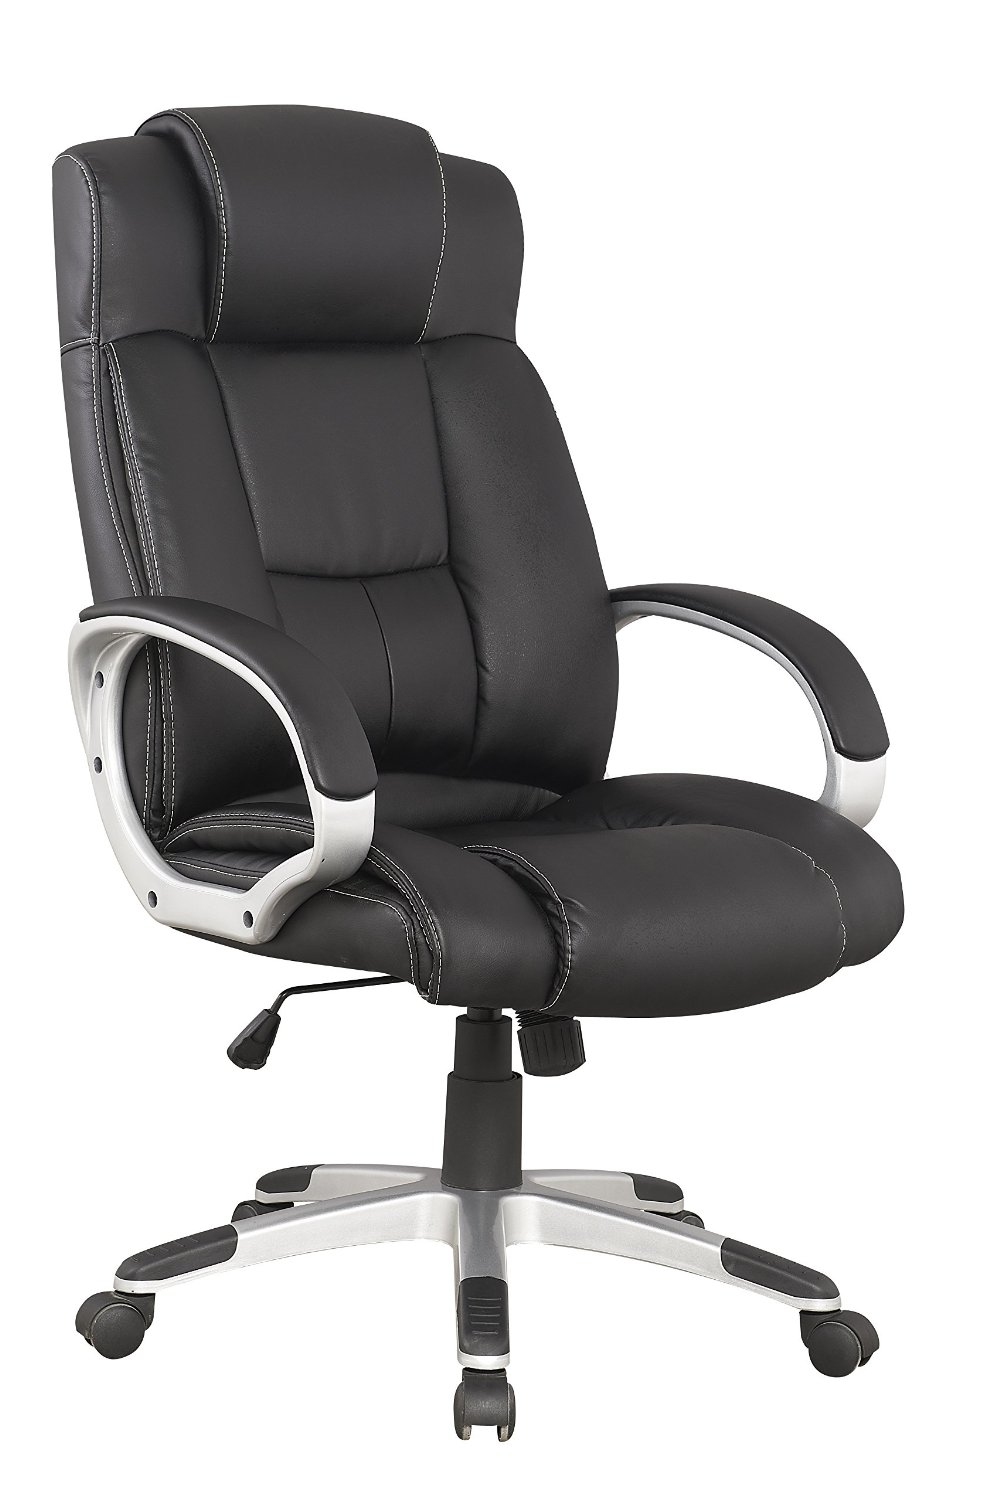 cheap office chair comfort find office chair comfort deals on line